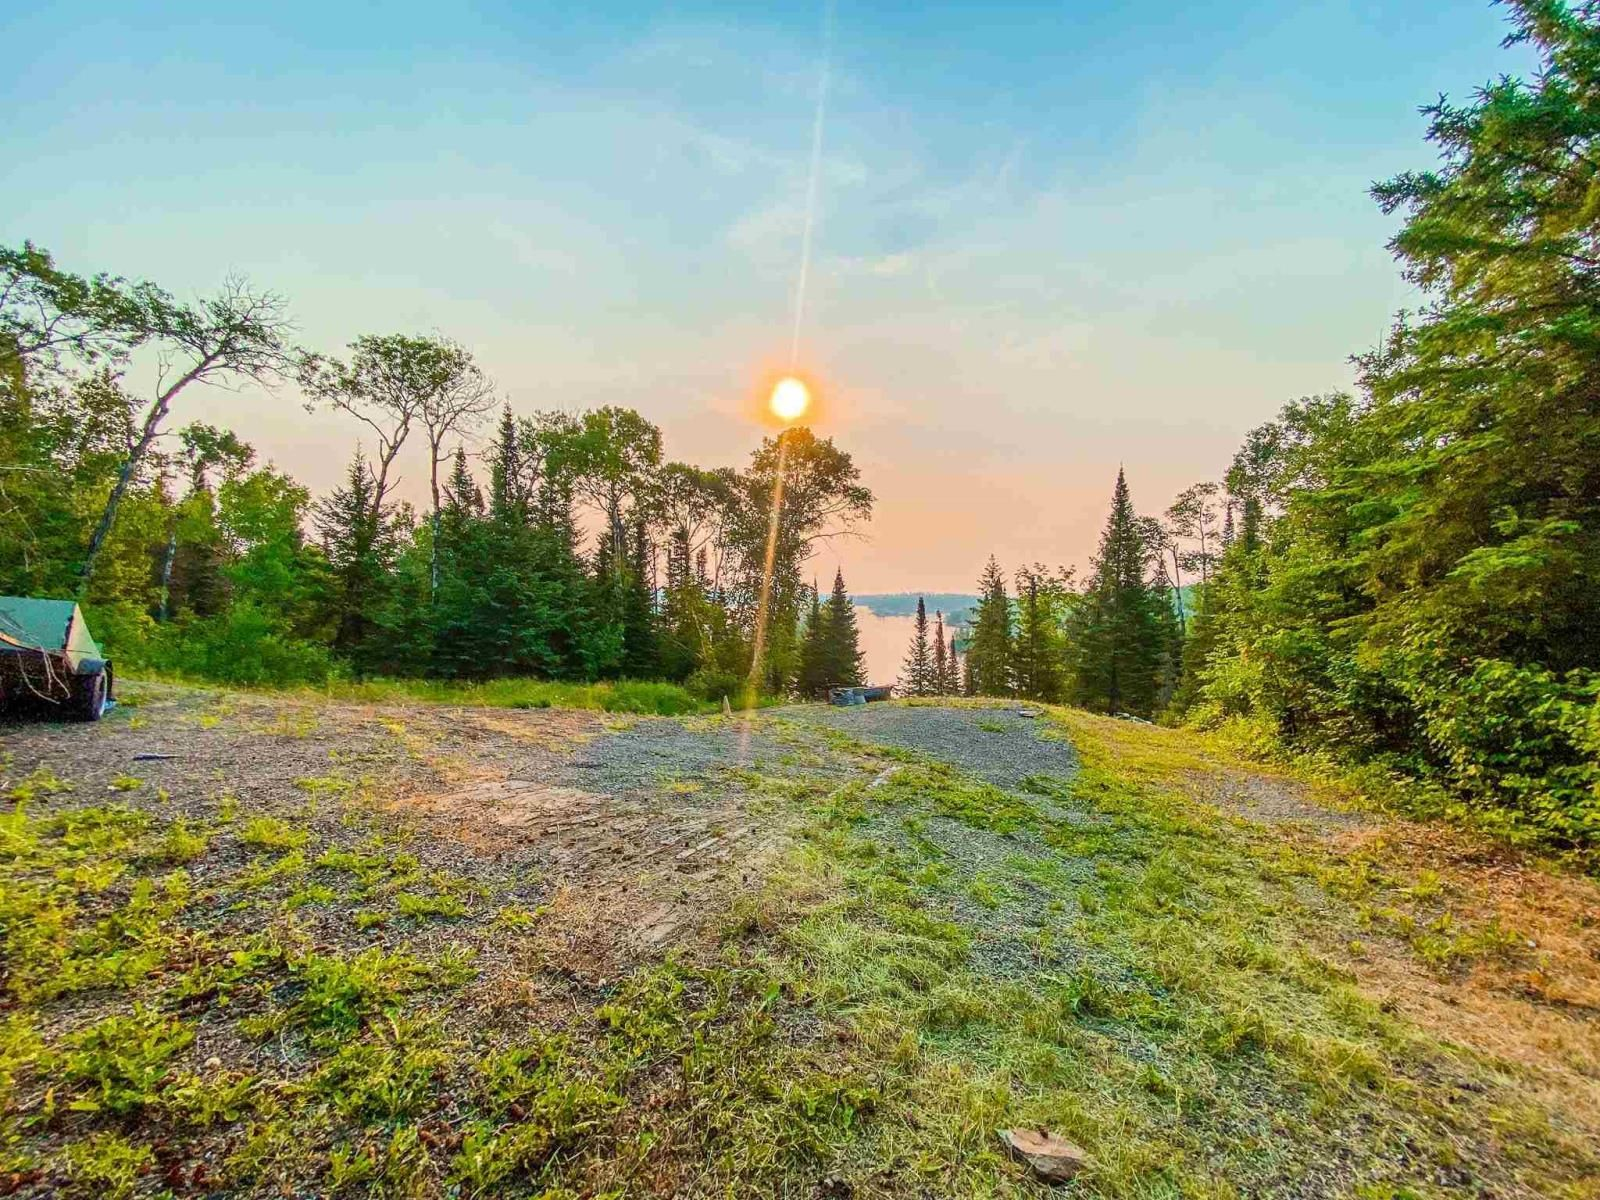 Main Photo: LOT 40 LILY PAD BAY in KENORA: Vacant Land for sale : MLS®# TB211834